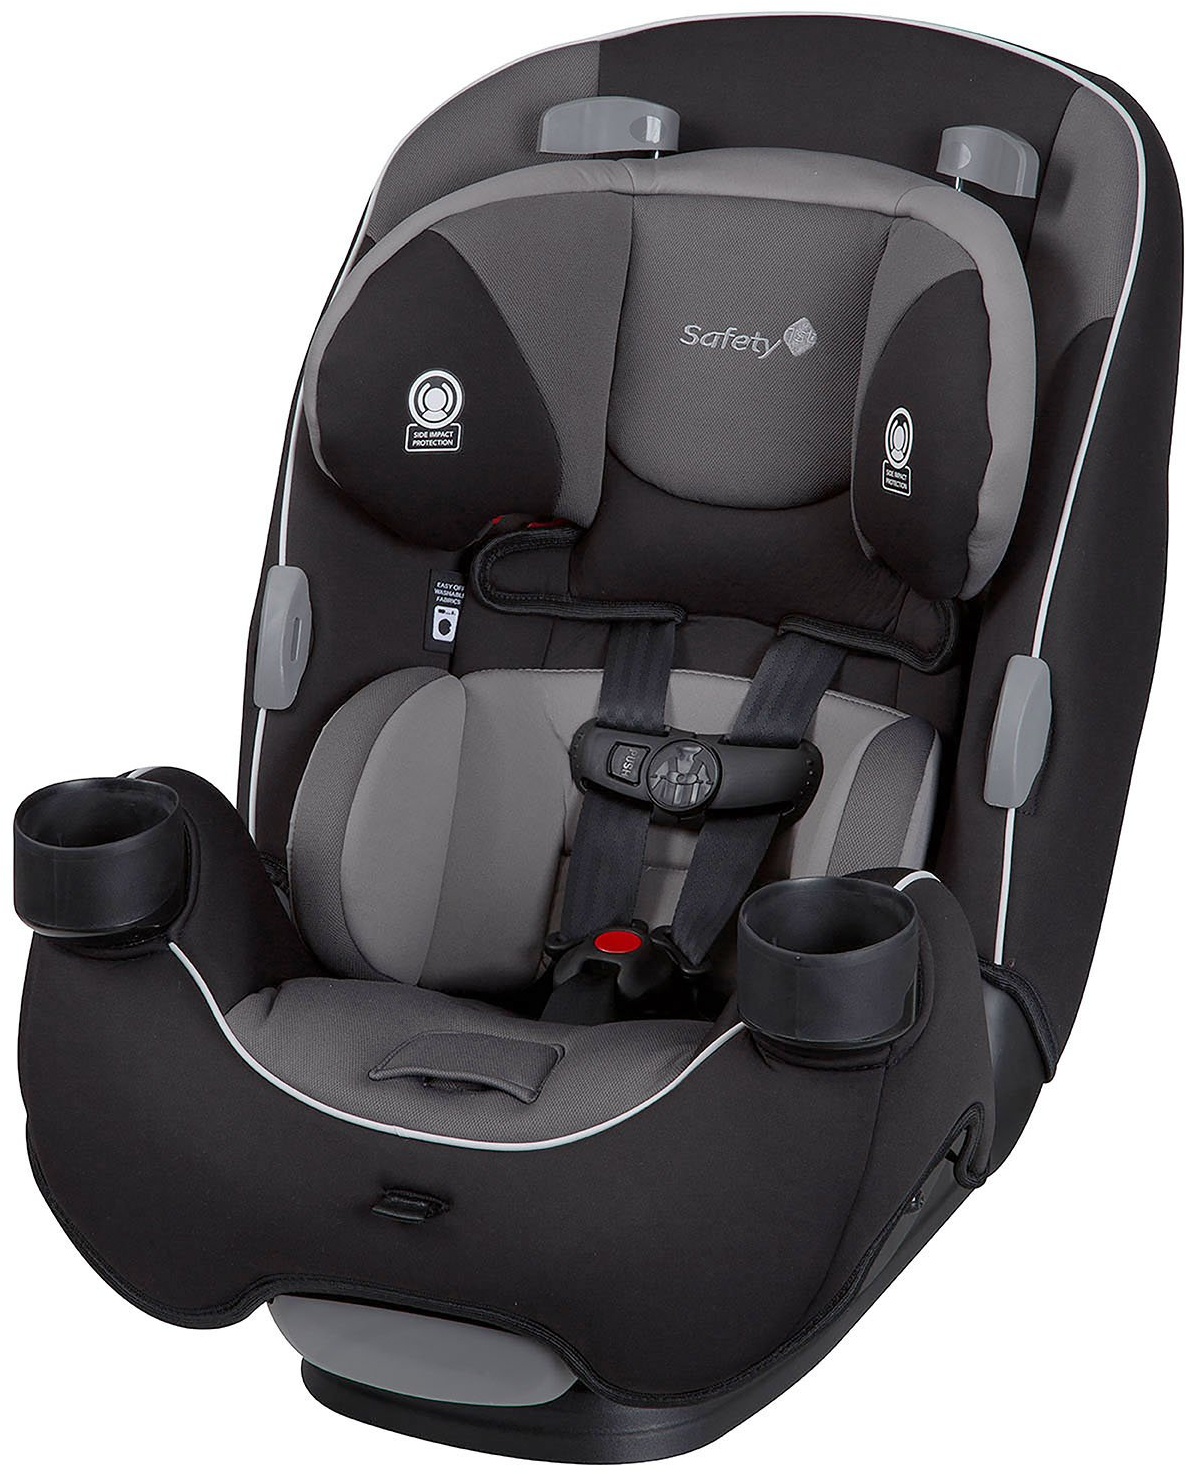 Details about 3-in-1 Convertible Car Seat